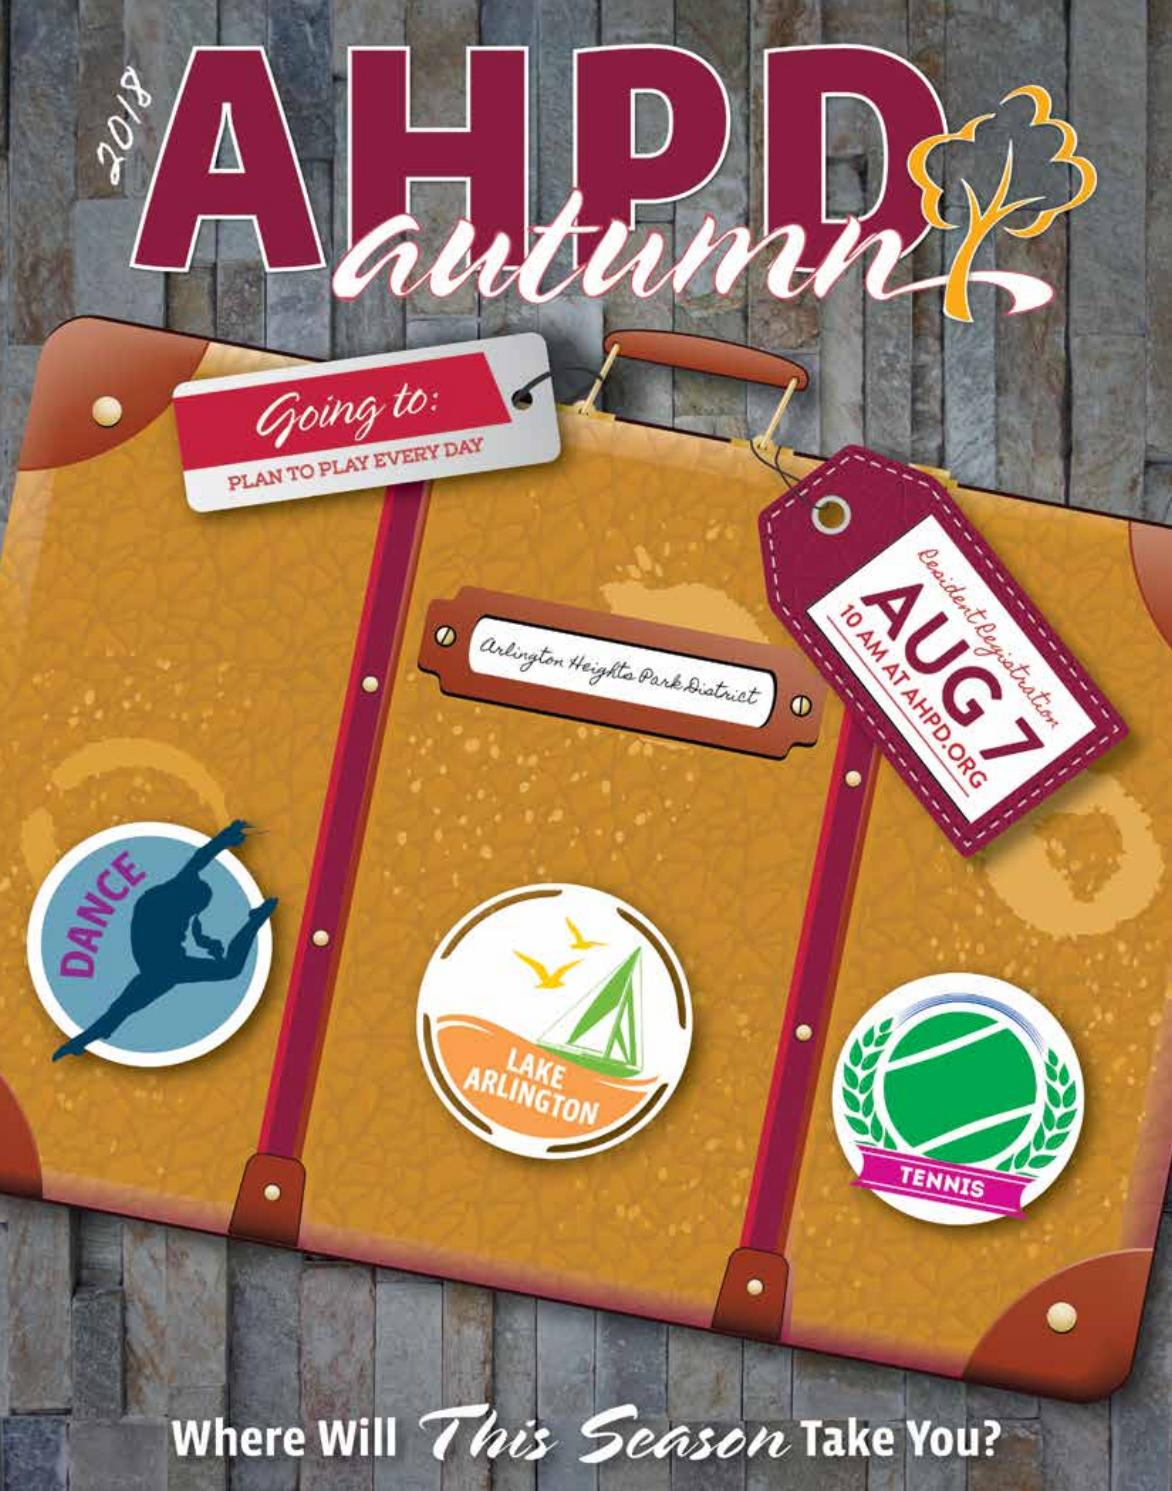 e0a20be5 AHPD Autumn 2018 Program Guide by Arlington Heights Park District - issuu